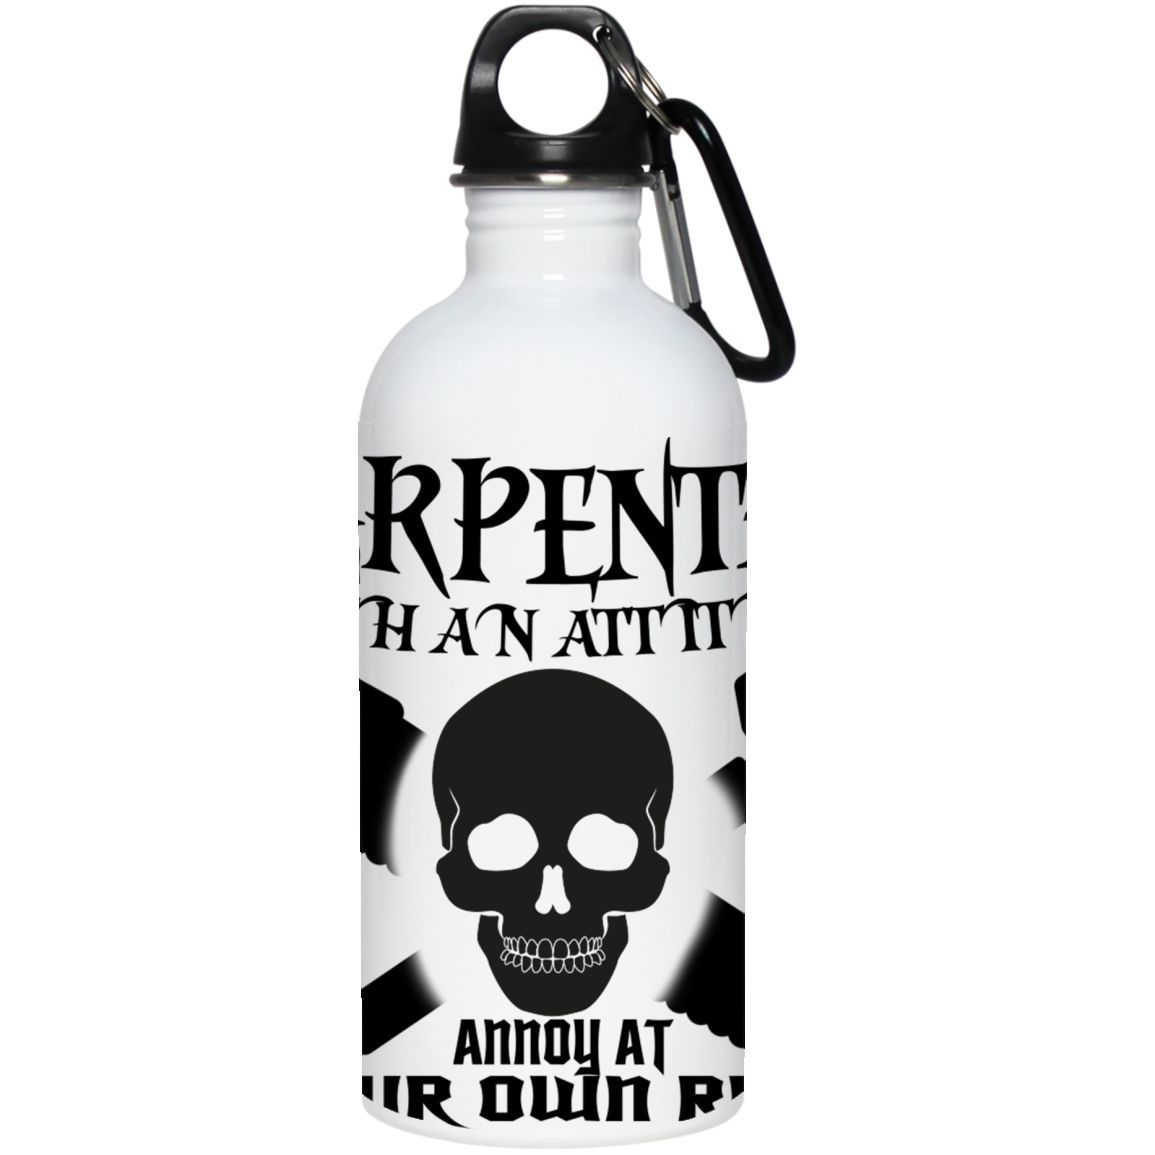 Carpenter With An Attitude Annoy At Your Own Risk Stainless Steel Water Bottles